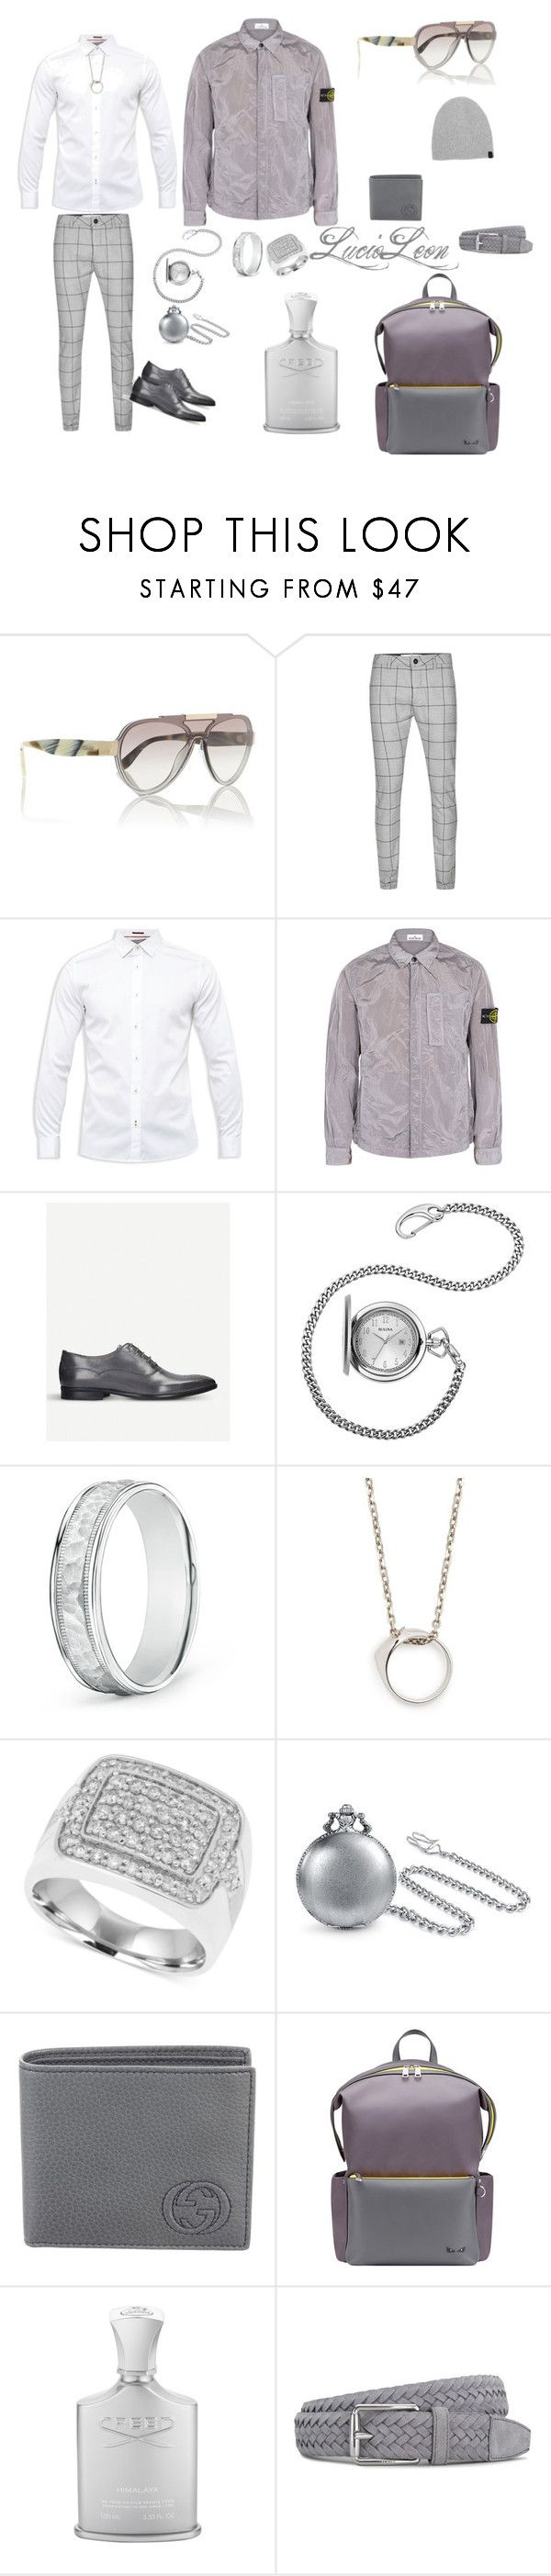 """Feeling gray"" by pynkbutter ❤ liked on Polyvore featuring Prada, Topman, Ted Baker, STONE ISLAND, Kurt Geiger, Bulova, Maison Margiela, Bling Jewelry, Gucci and Fendi"